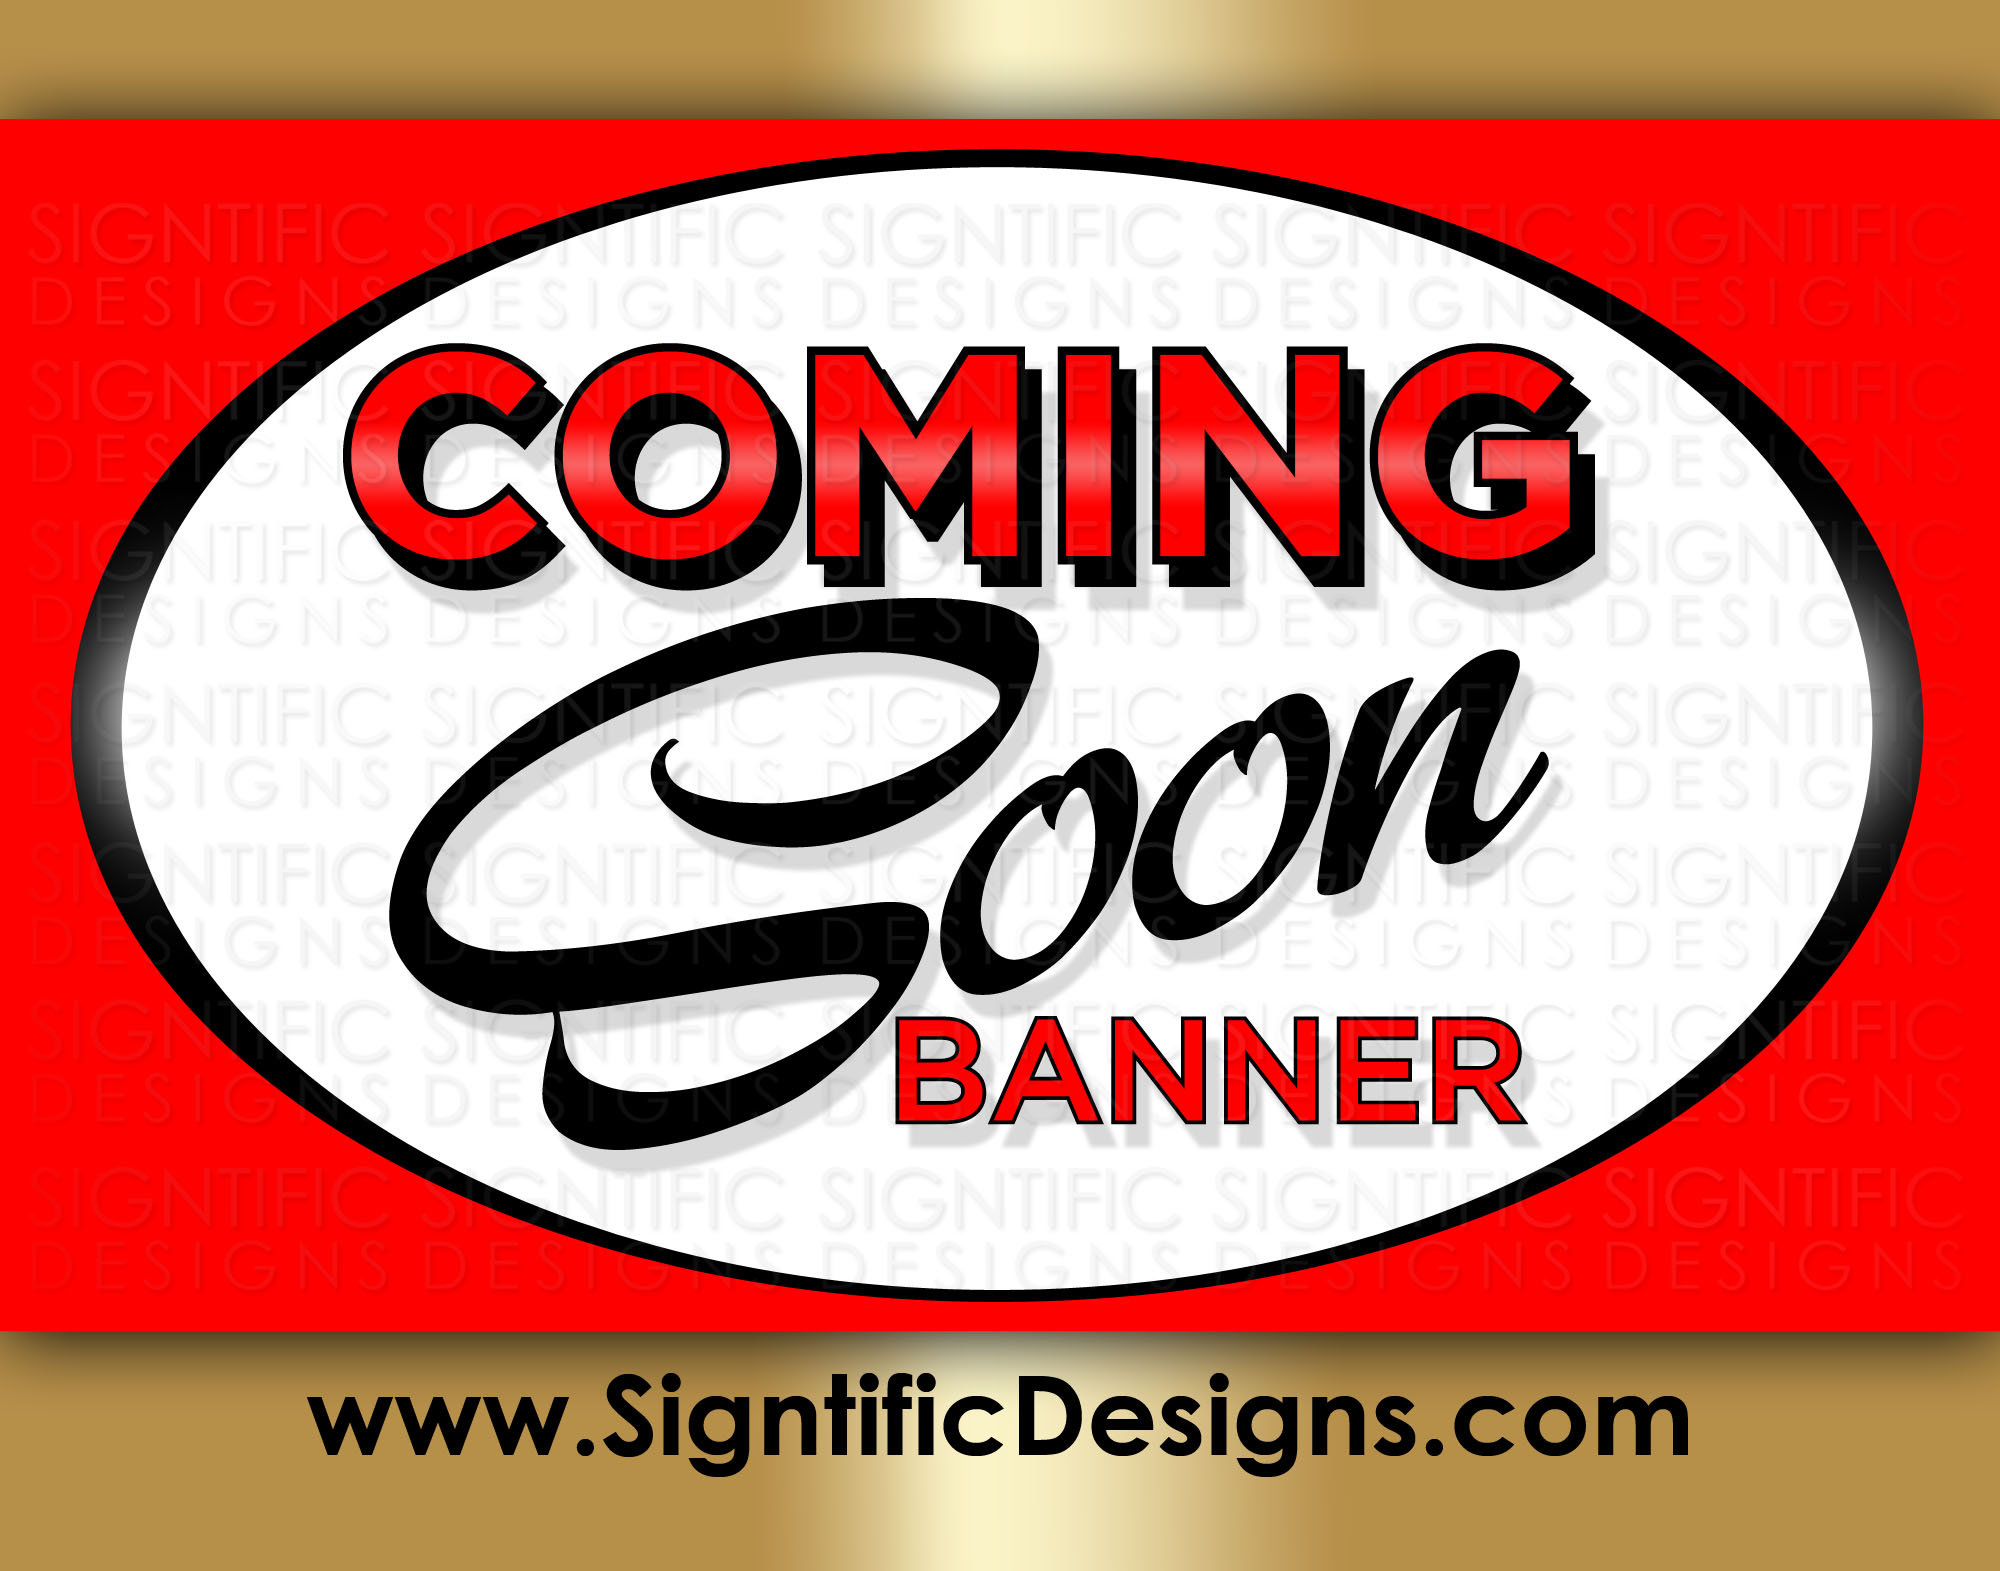 Coming Soon Banner, Full Color Banner, New Business